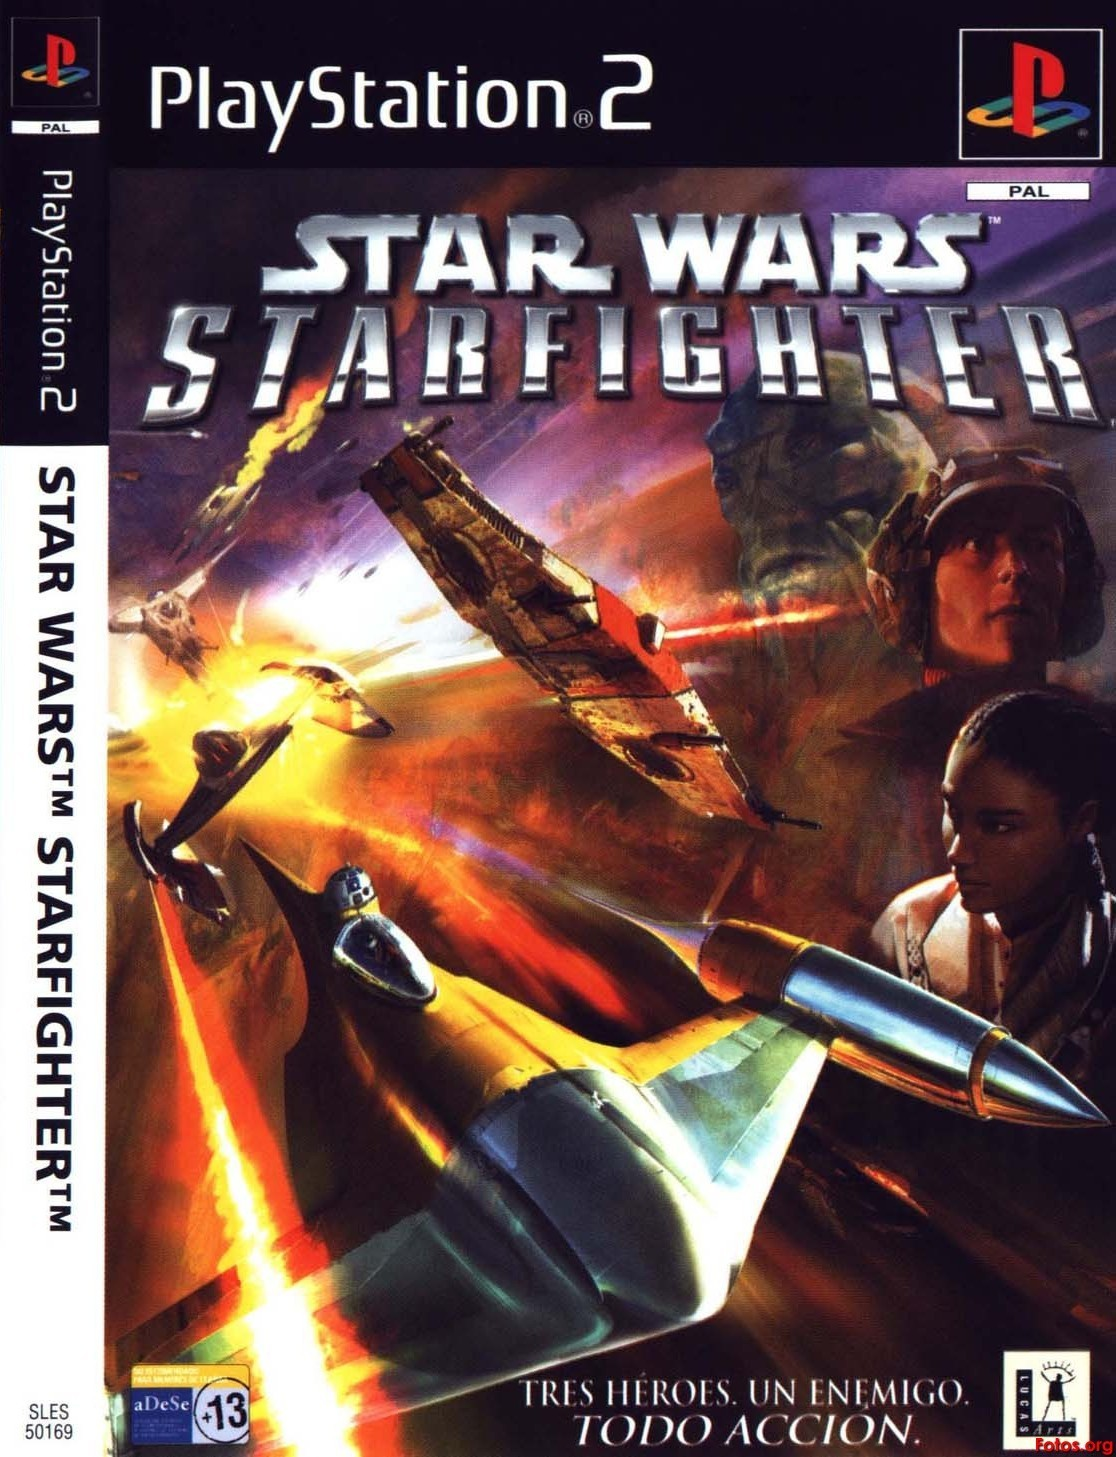 Star Wars Starfighter